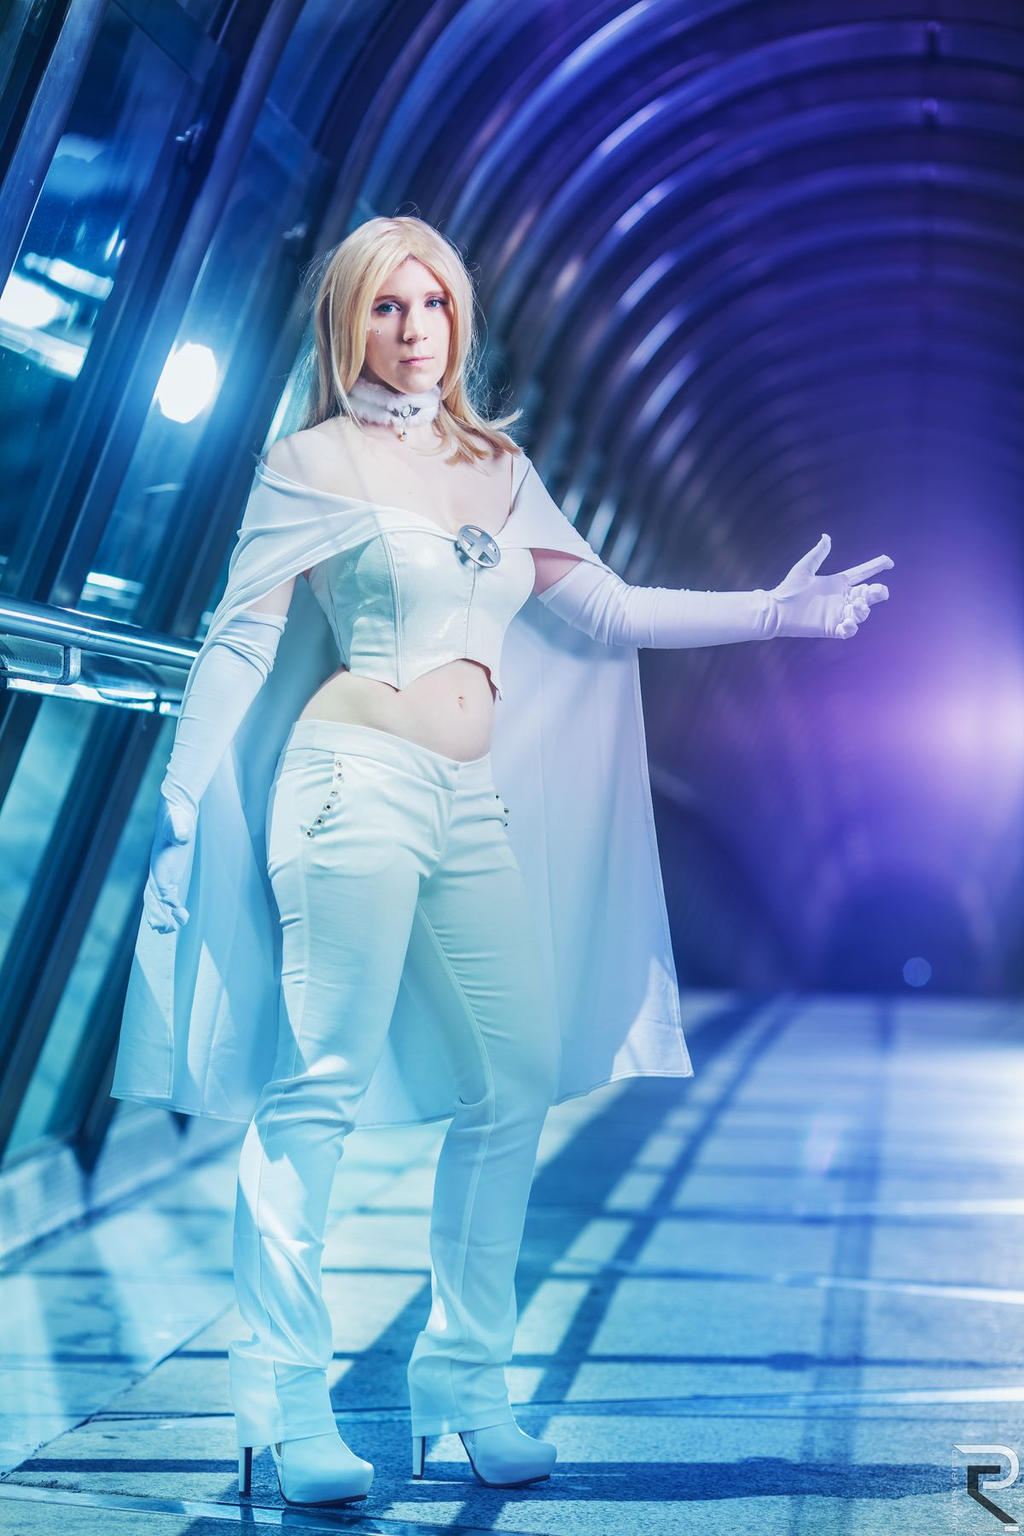 frost men Biography x-men: first class: high hand during the 1950s, emma frost was the mistress of vinny lavecchia, a mafia boss based in las vegas, nevada.